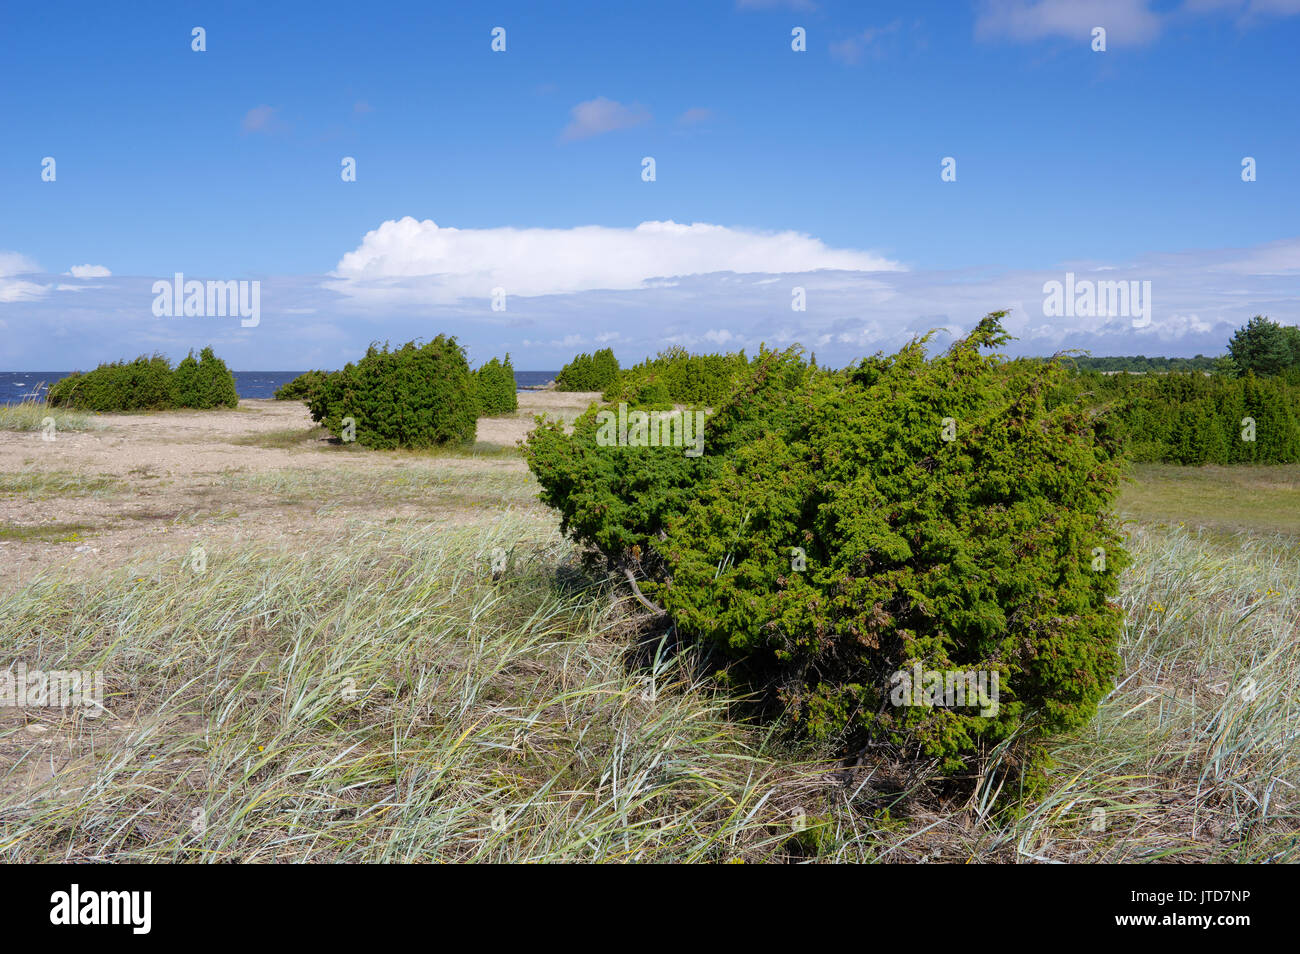 Kihnu junipers. Islland Kihnu. Estonia, Baltic States, 5th August 2017 - Stock Image